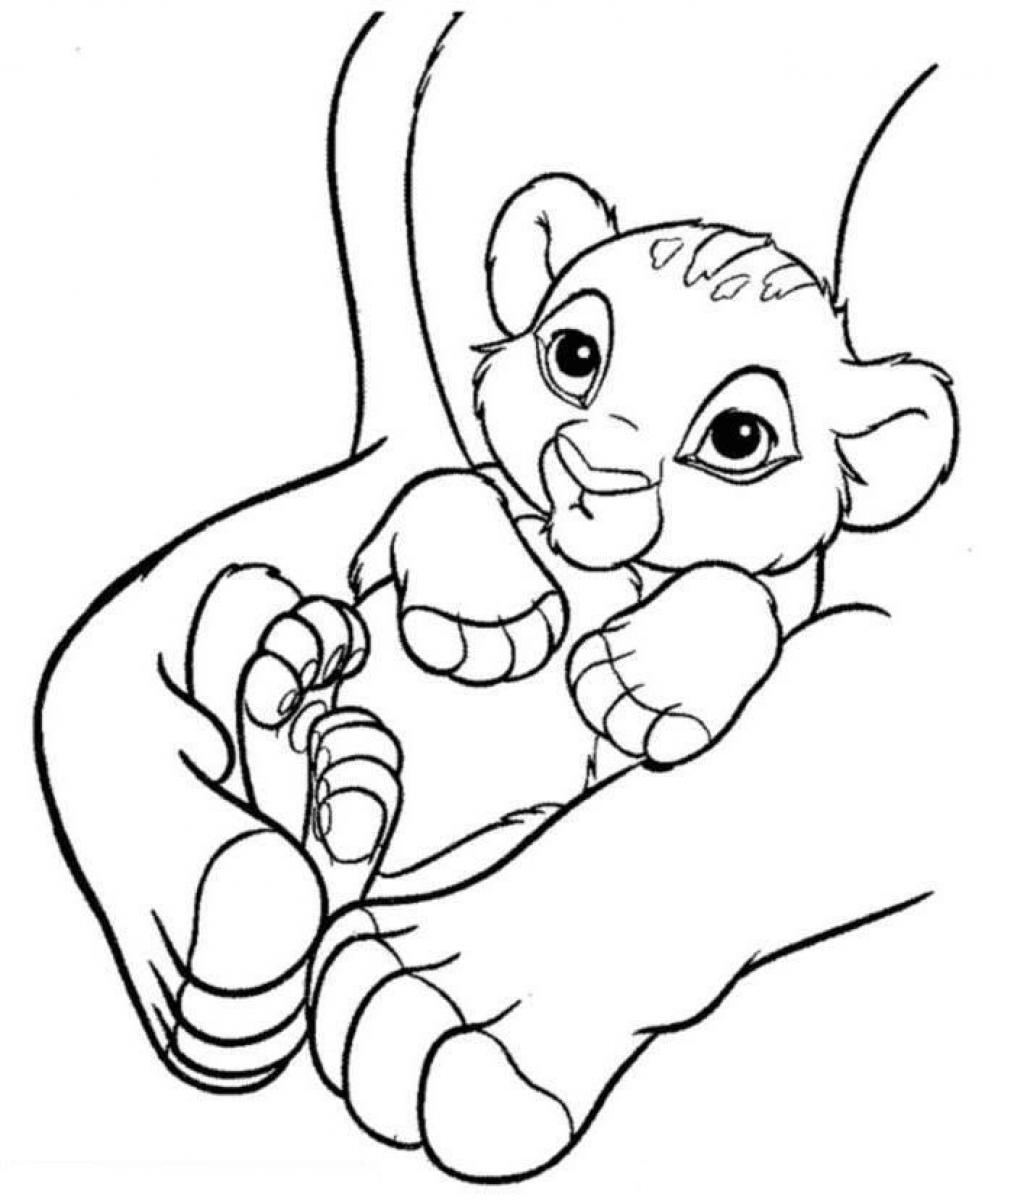 coloring lion king simba simba coloring pages to download and print for free simba coloring lion king